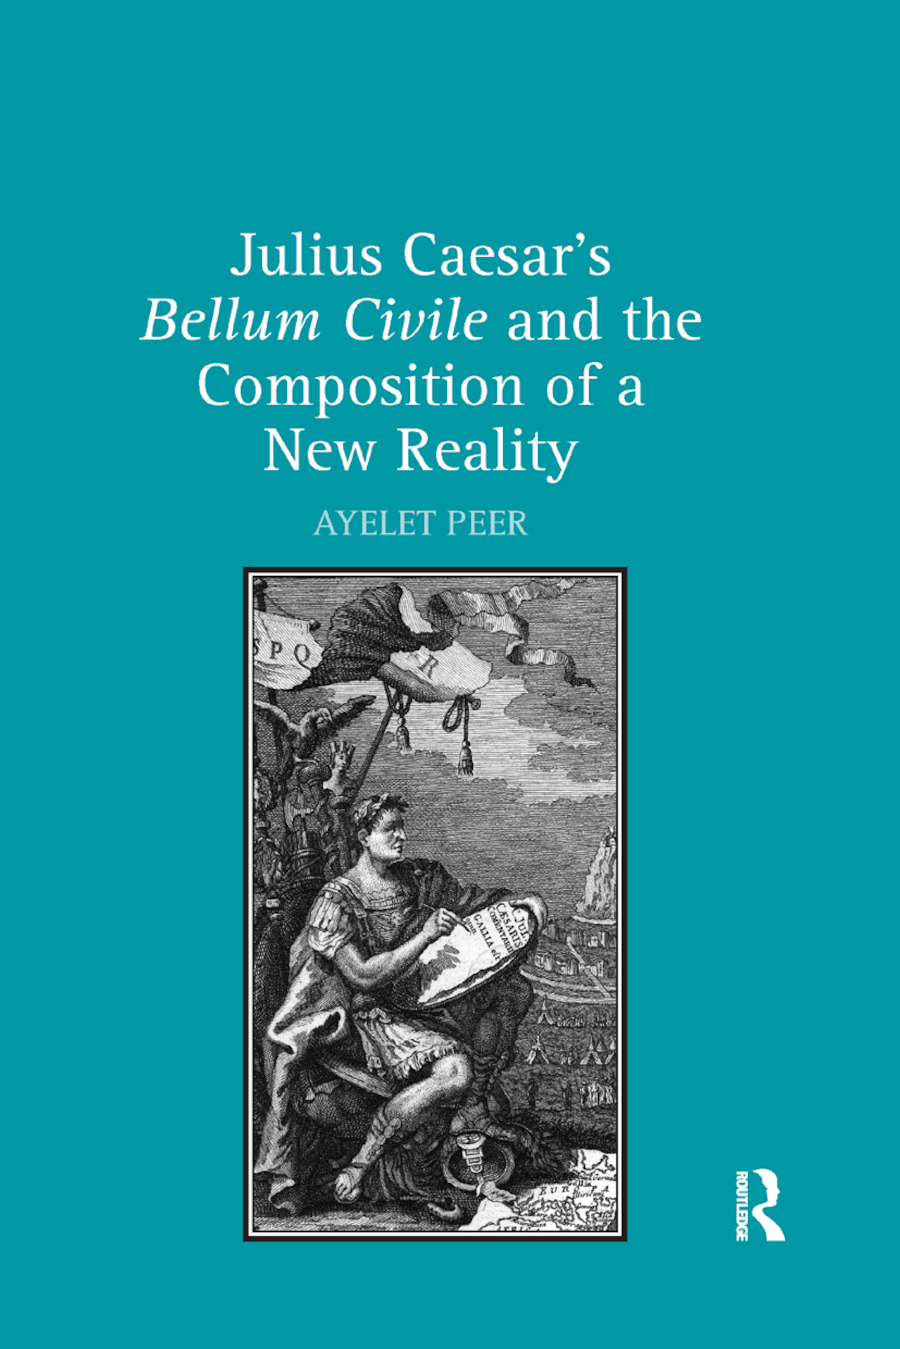 Julius Caesar's Bellum Civile and the Composition of a New Reality book cover